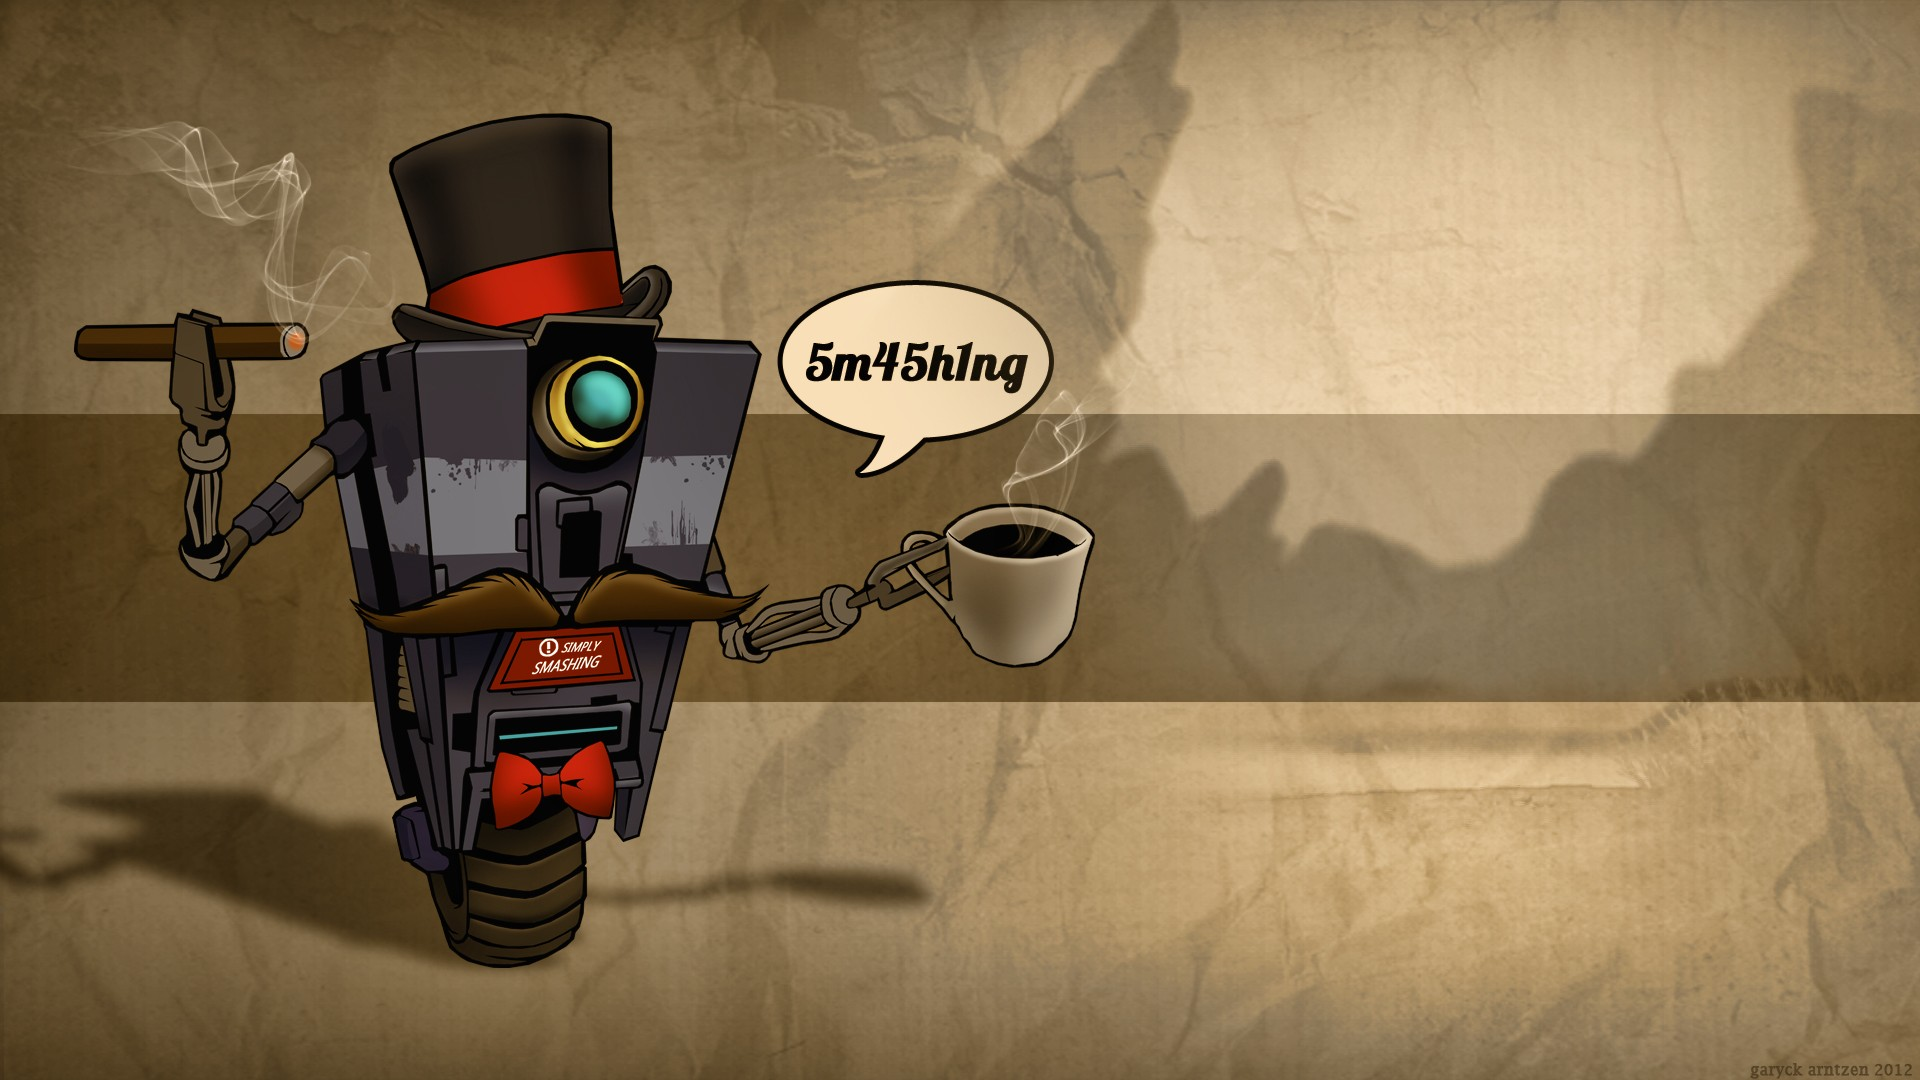 Smashing ClapTrap Wallpaper Simply Smashing ClapTrap iPhone Wallpaper 1920x1080